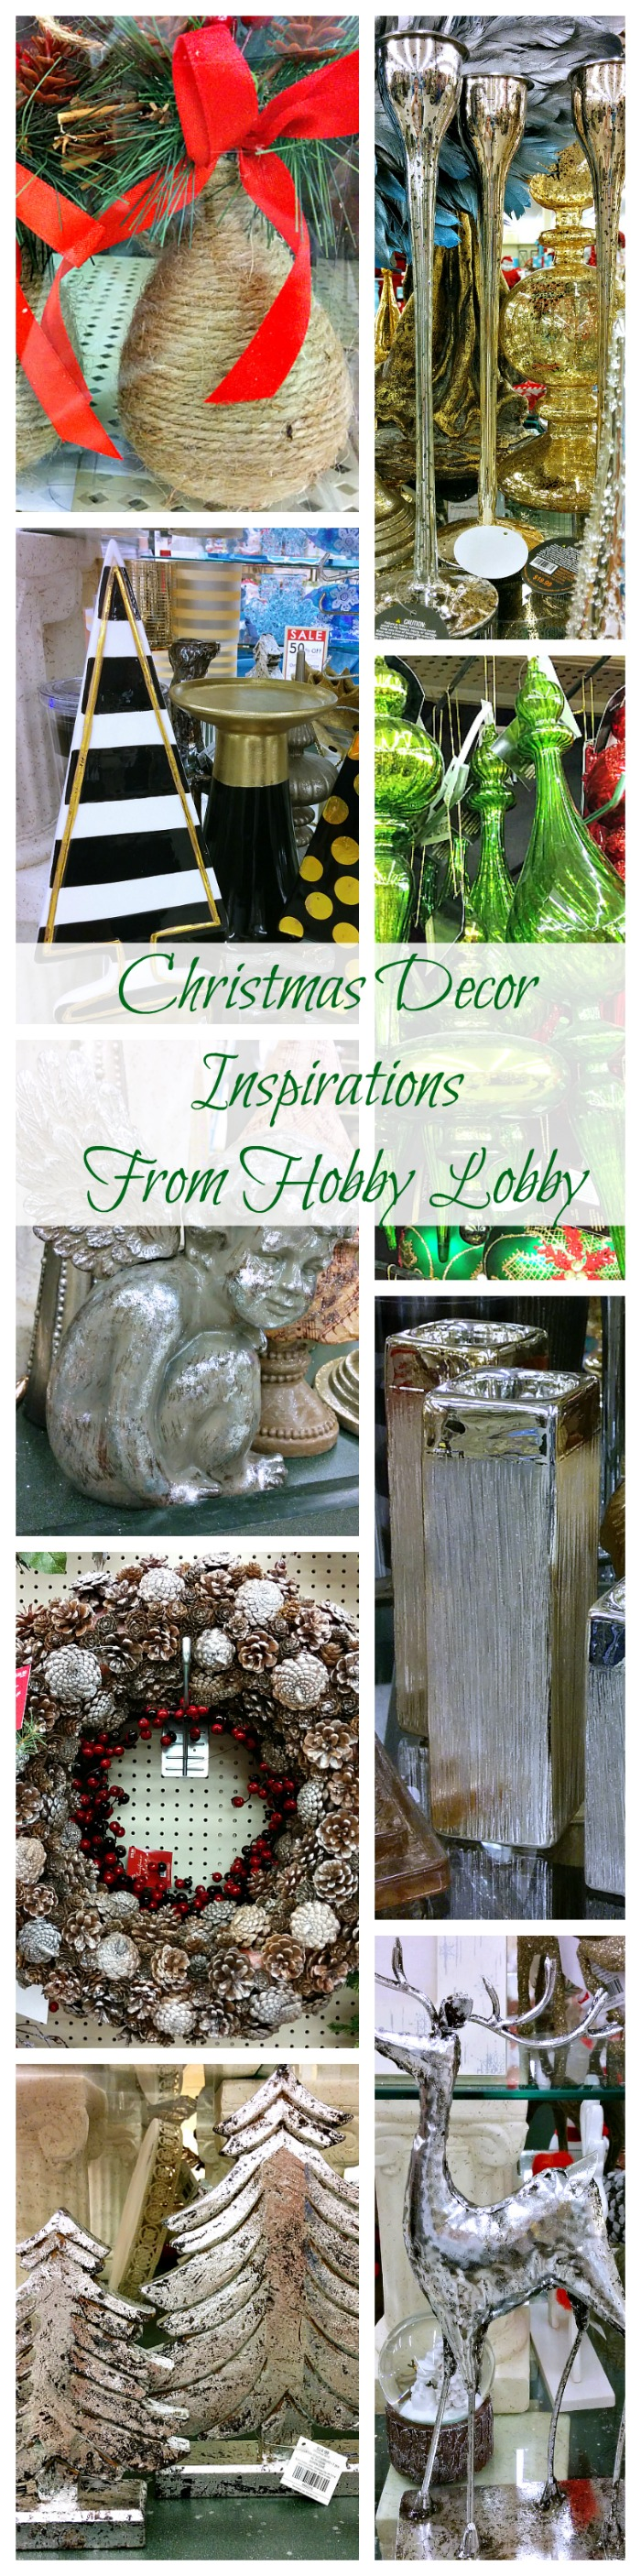 christmas decor ideas inspirations from hobby lobby - Hobby Lobby After Christmas Sale